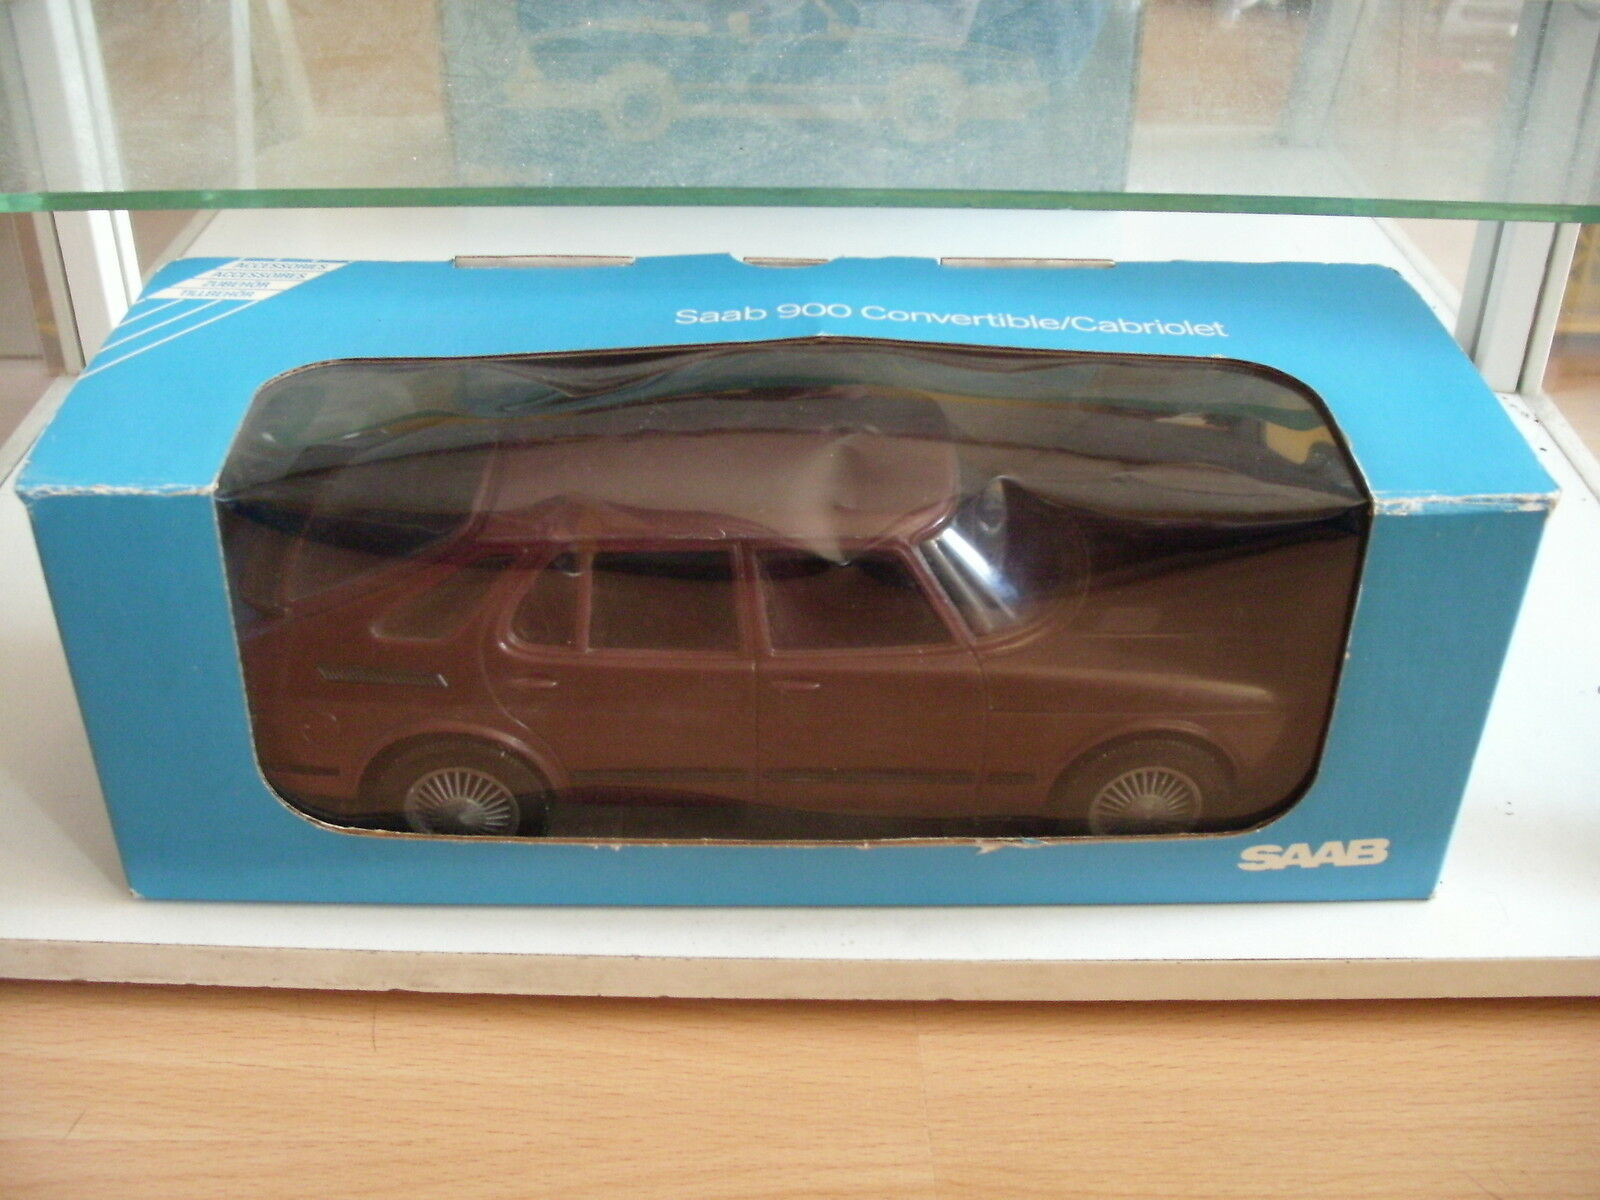 Stahlberg Finland  Saab 900 Turbo in marron in Box  promotions discount